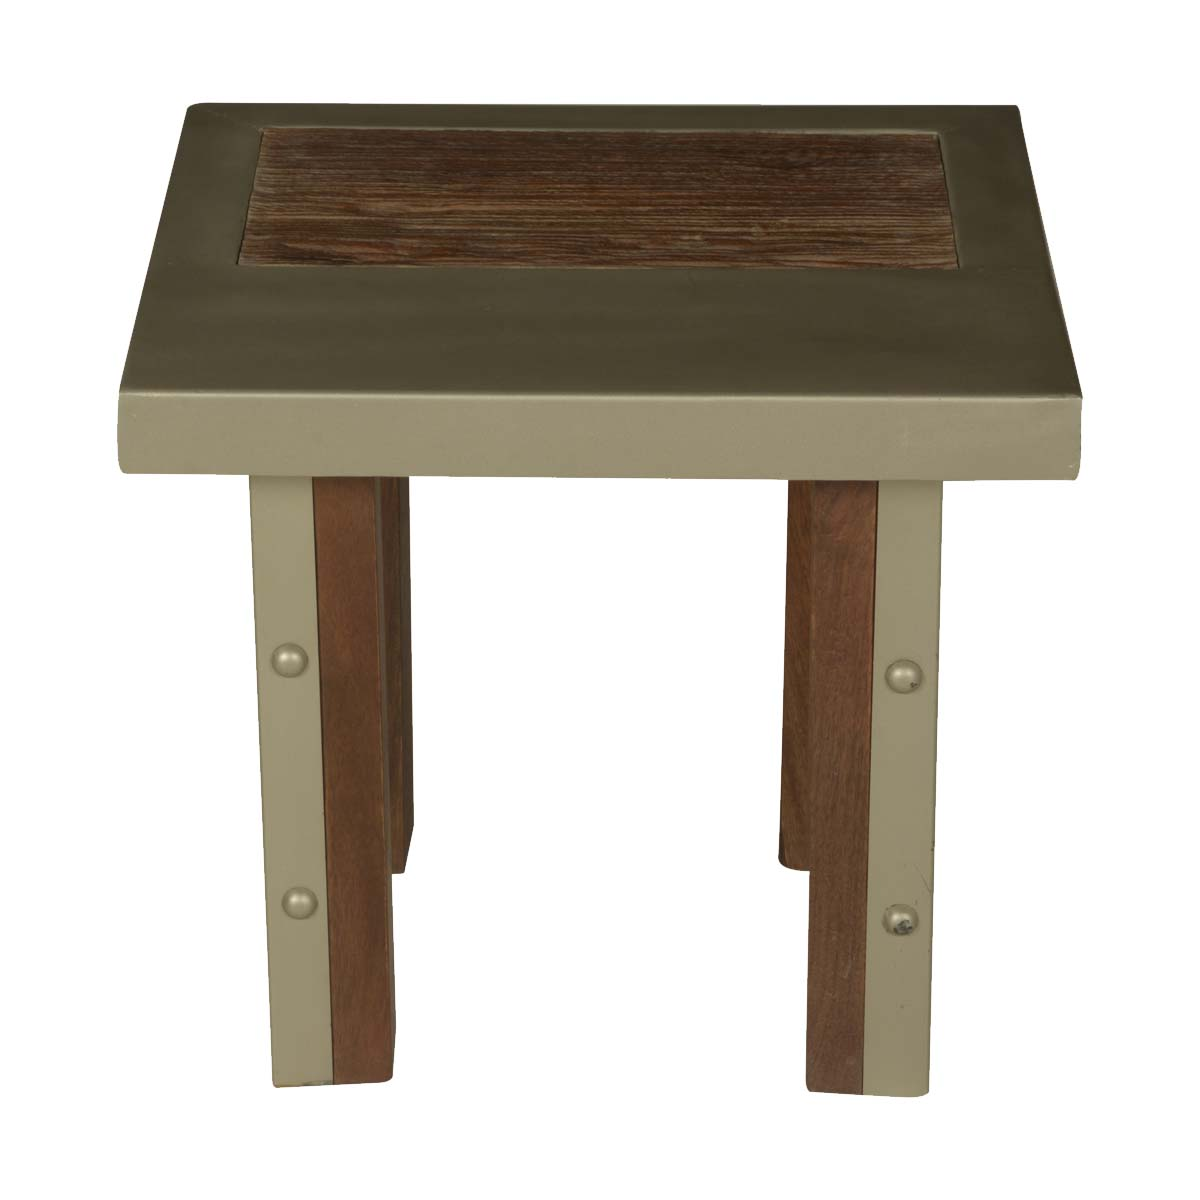 world interiors briva mango wood side table atg modern industrial iron square accent end mirrored rectangular coffee oak floor threshold astoria leather sofa rustic looking tables